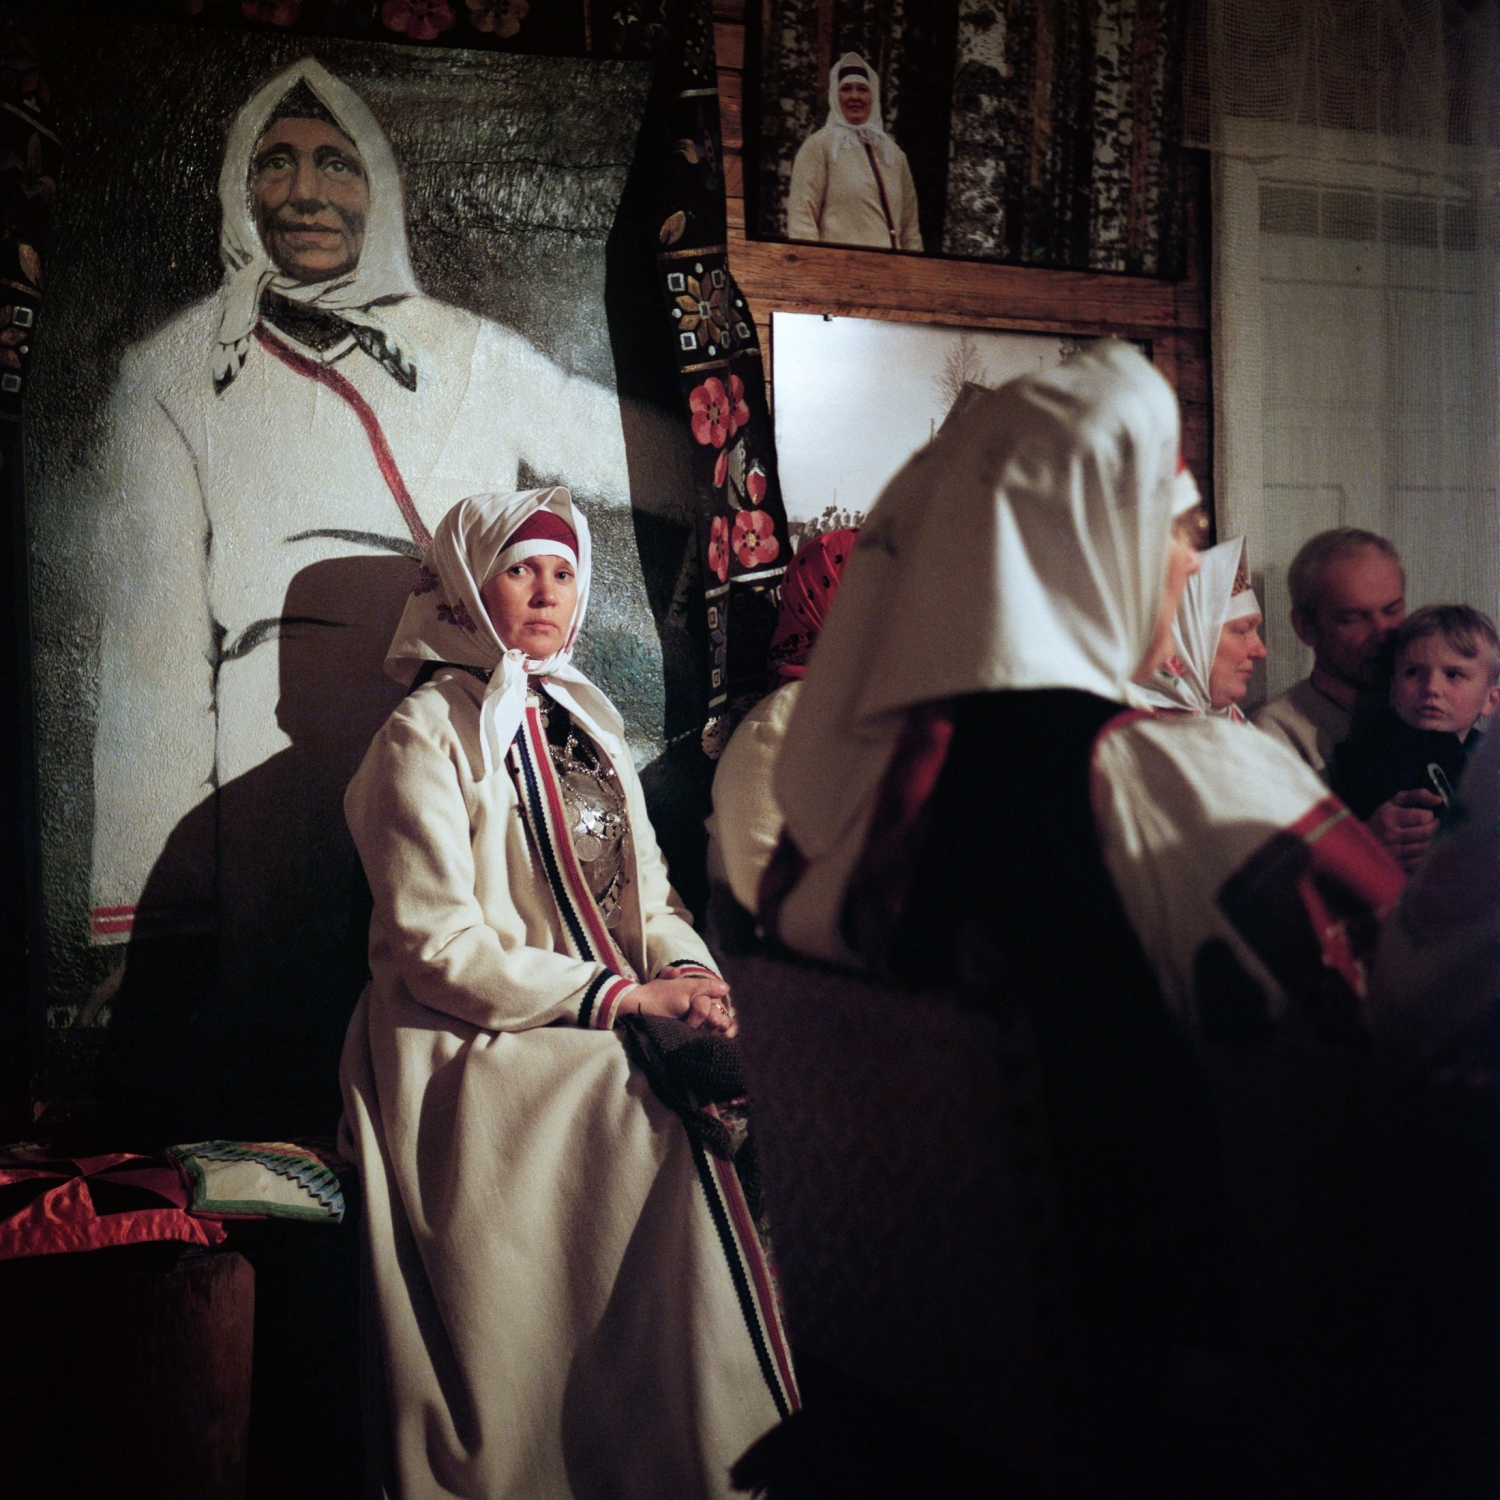 Marika Keerpalu, wearing a traditional costume at a small art gallery on the Estonian side of the border, welcomes a group of visitors from Mordovia, Russia. The visitors speak a language called Erzya that is similar to Seto. Wearing her hair fully covered signifies that Marika is married. Here, she sits below a painting of Hilana Taarka, a Seto woman from the turn of the 20th century famed for her rebellious singing.